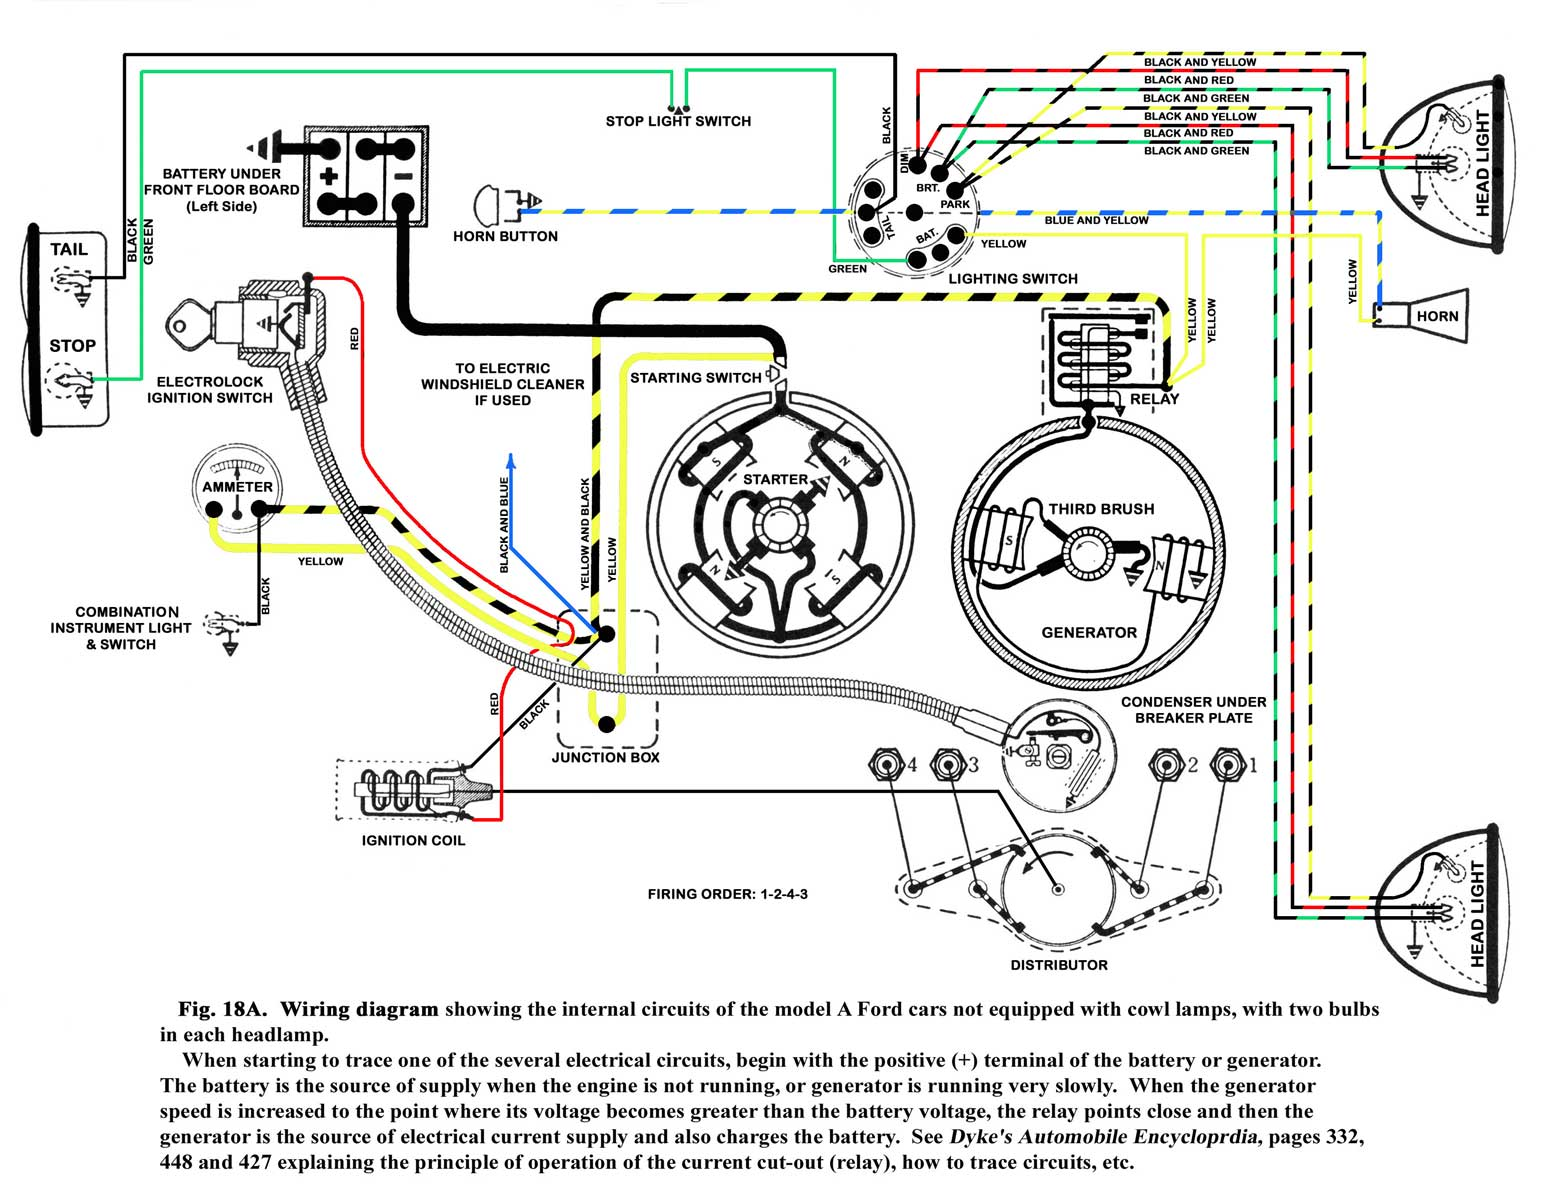 Model A Ford Turn Signal Wiring Diagram 302 Distributor 2006 Simple Data